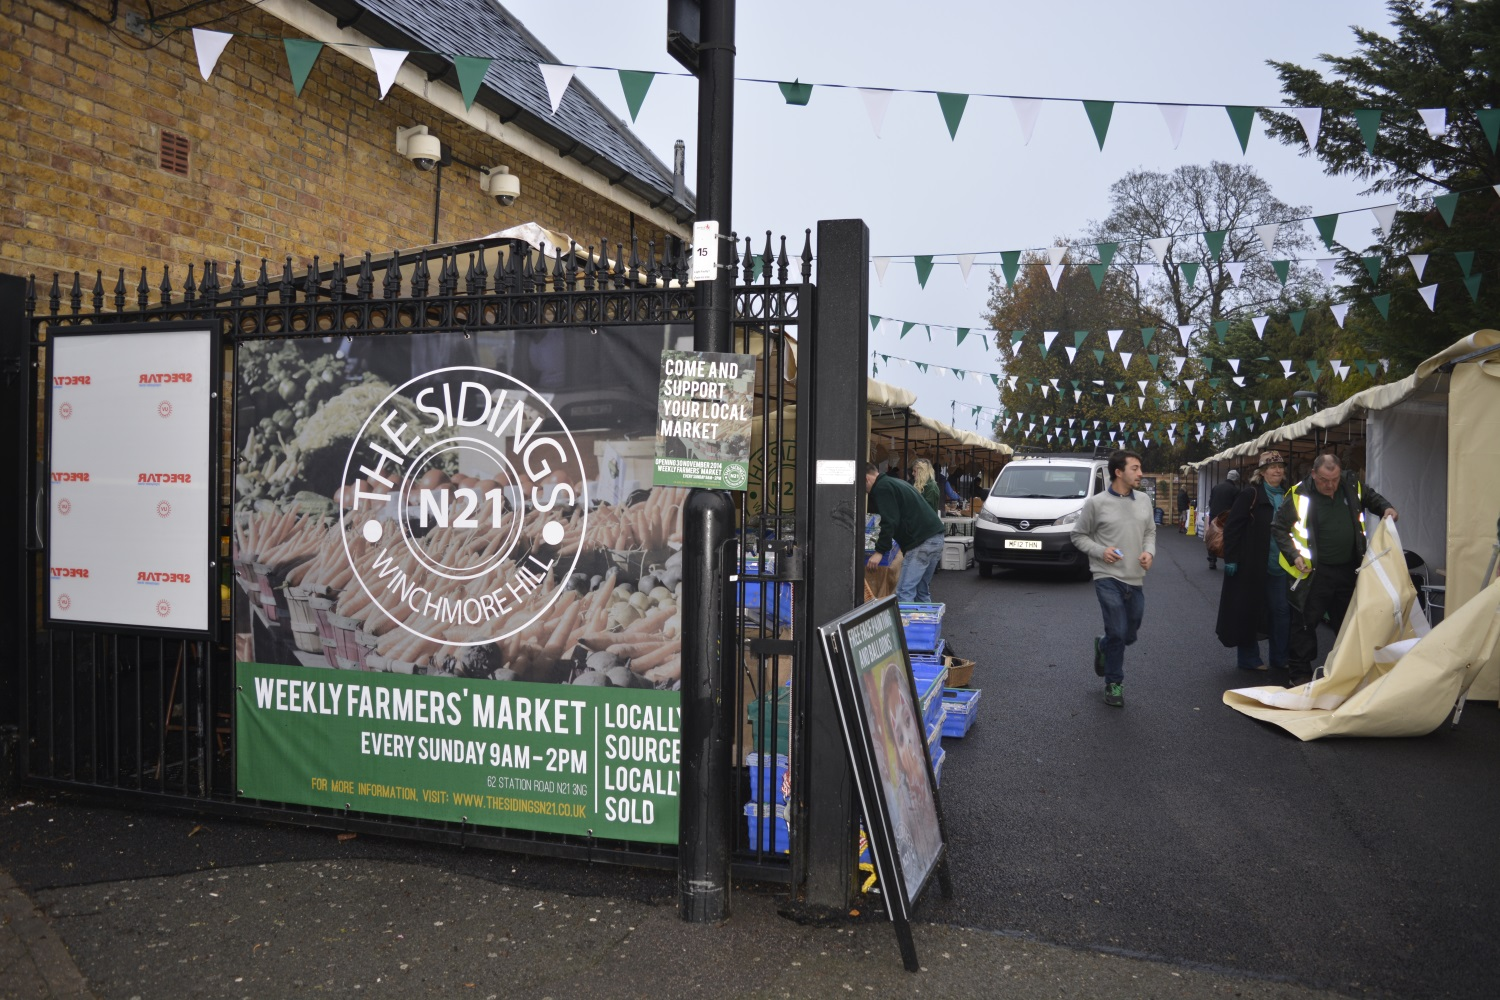 Entrance to The Sidings N21 just before the grand opening